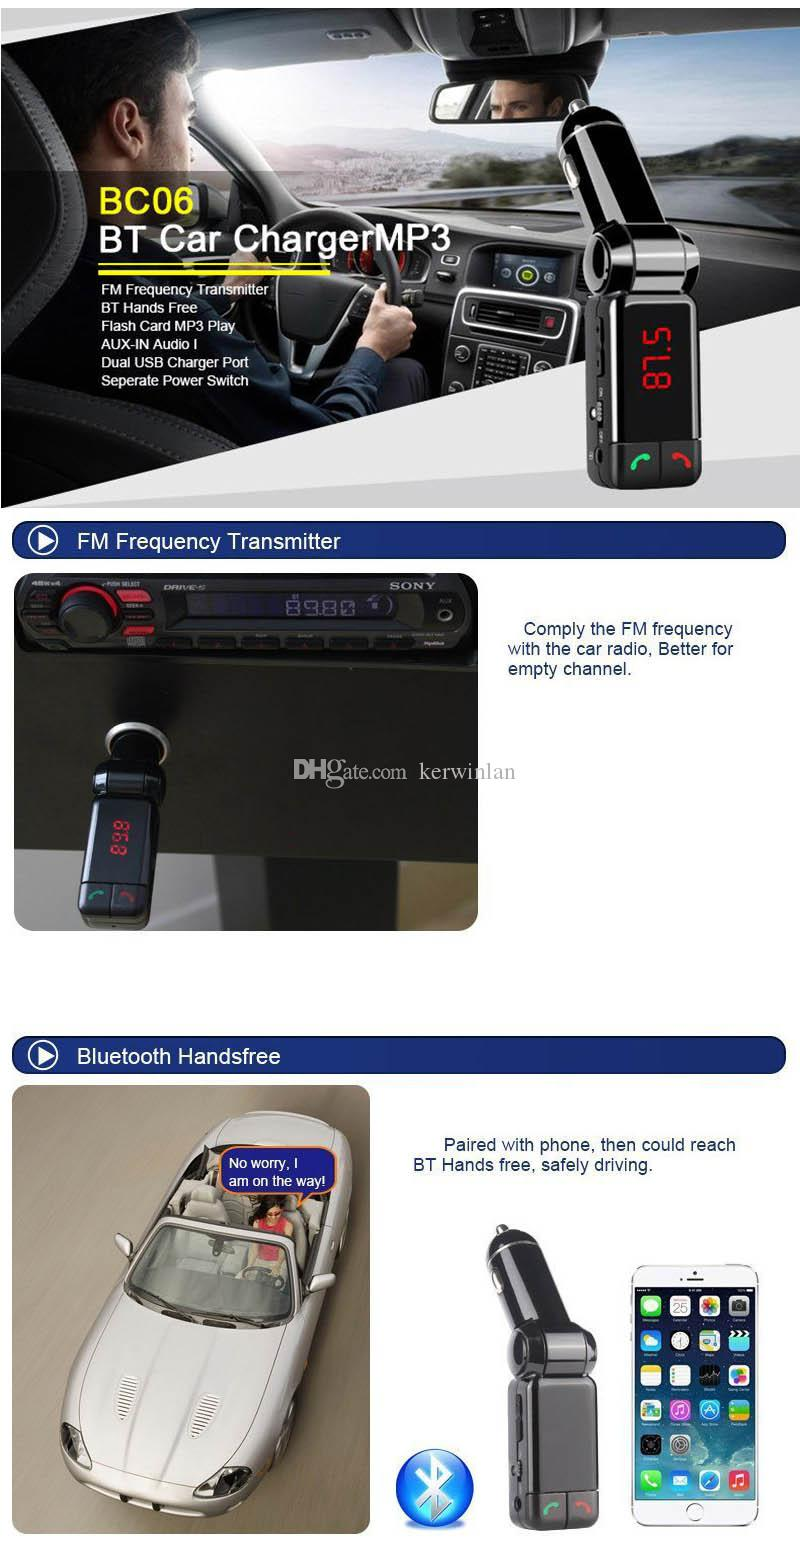 Bluetooth Car Kit BC06 Wireless Car Speakerphone BT Hands Free Dual USB Car Charger 3.5mm AUX-IN FM Transmitter For Samsung iPhone Mobile